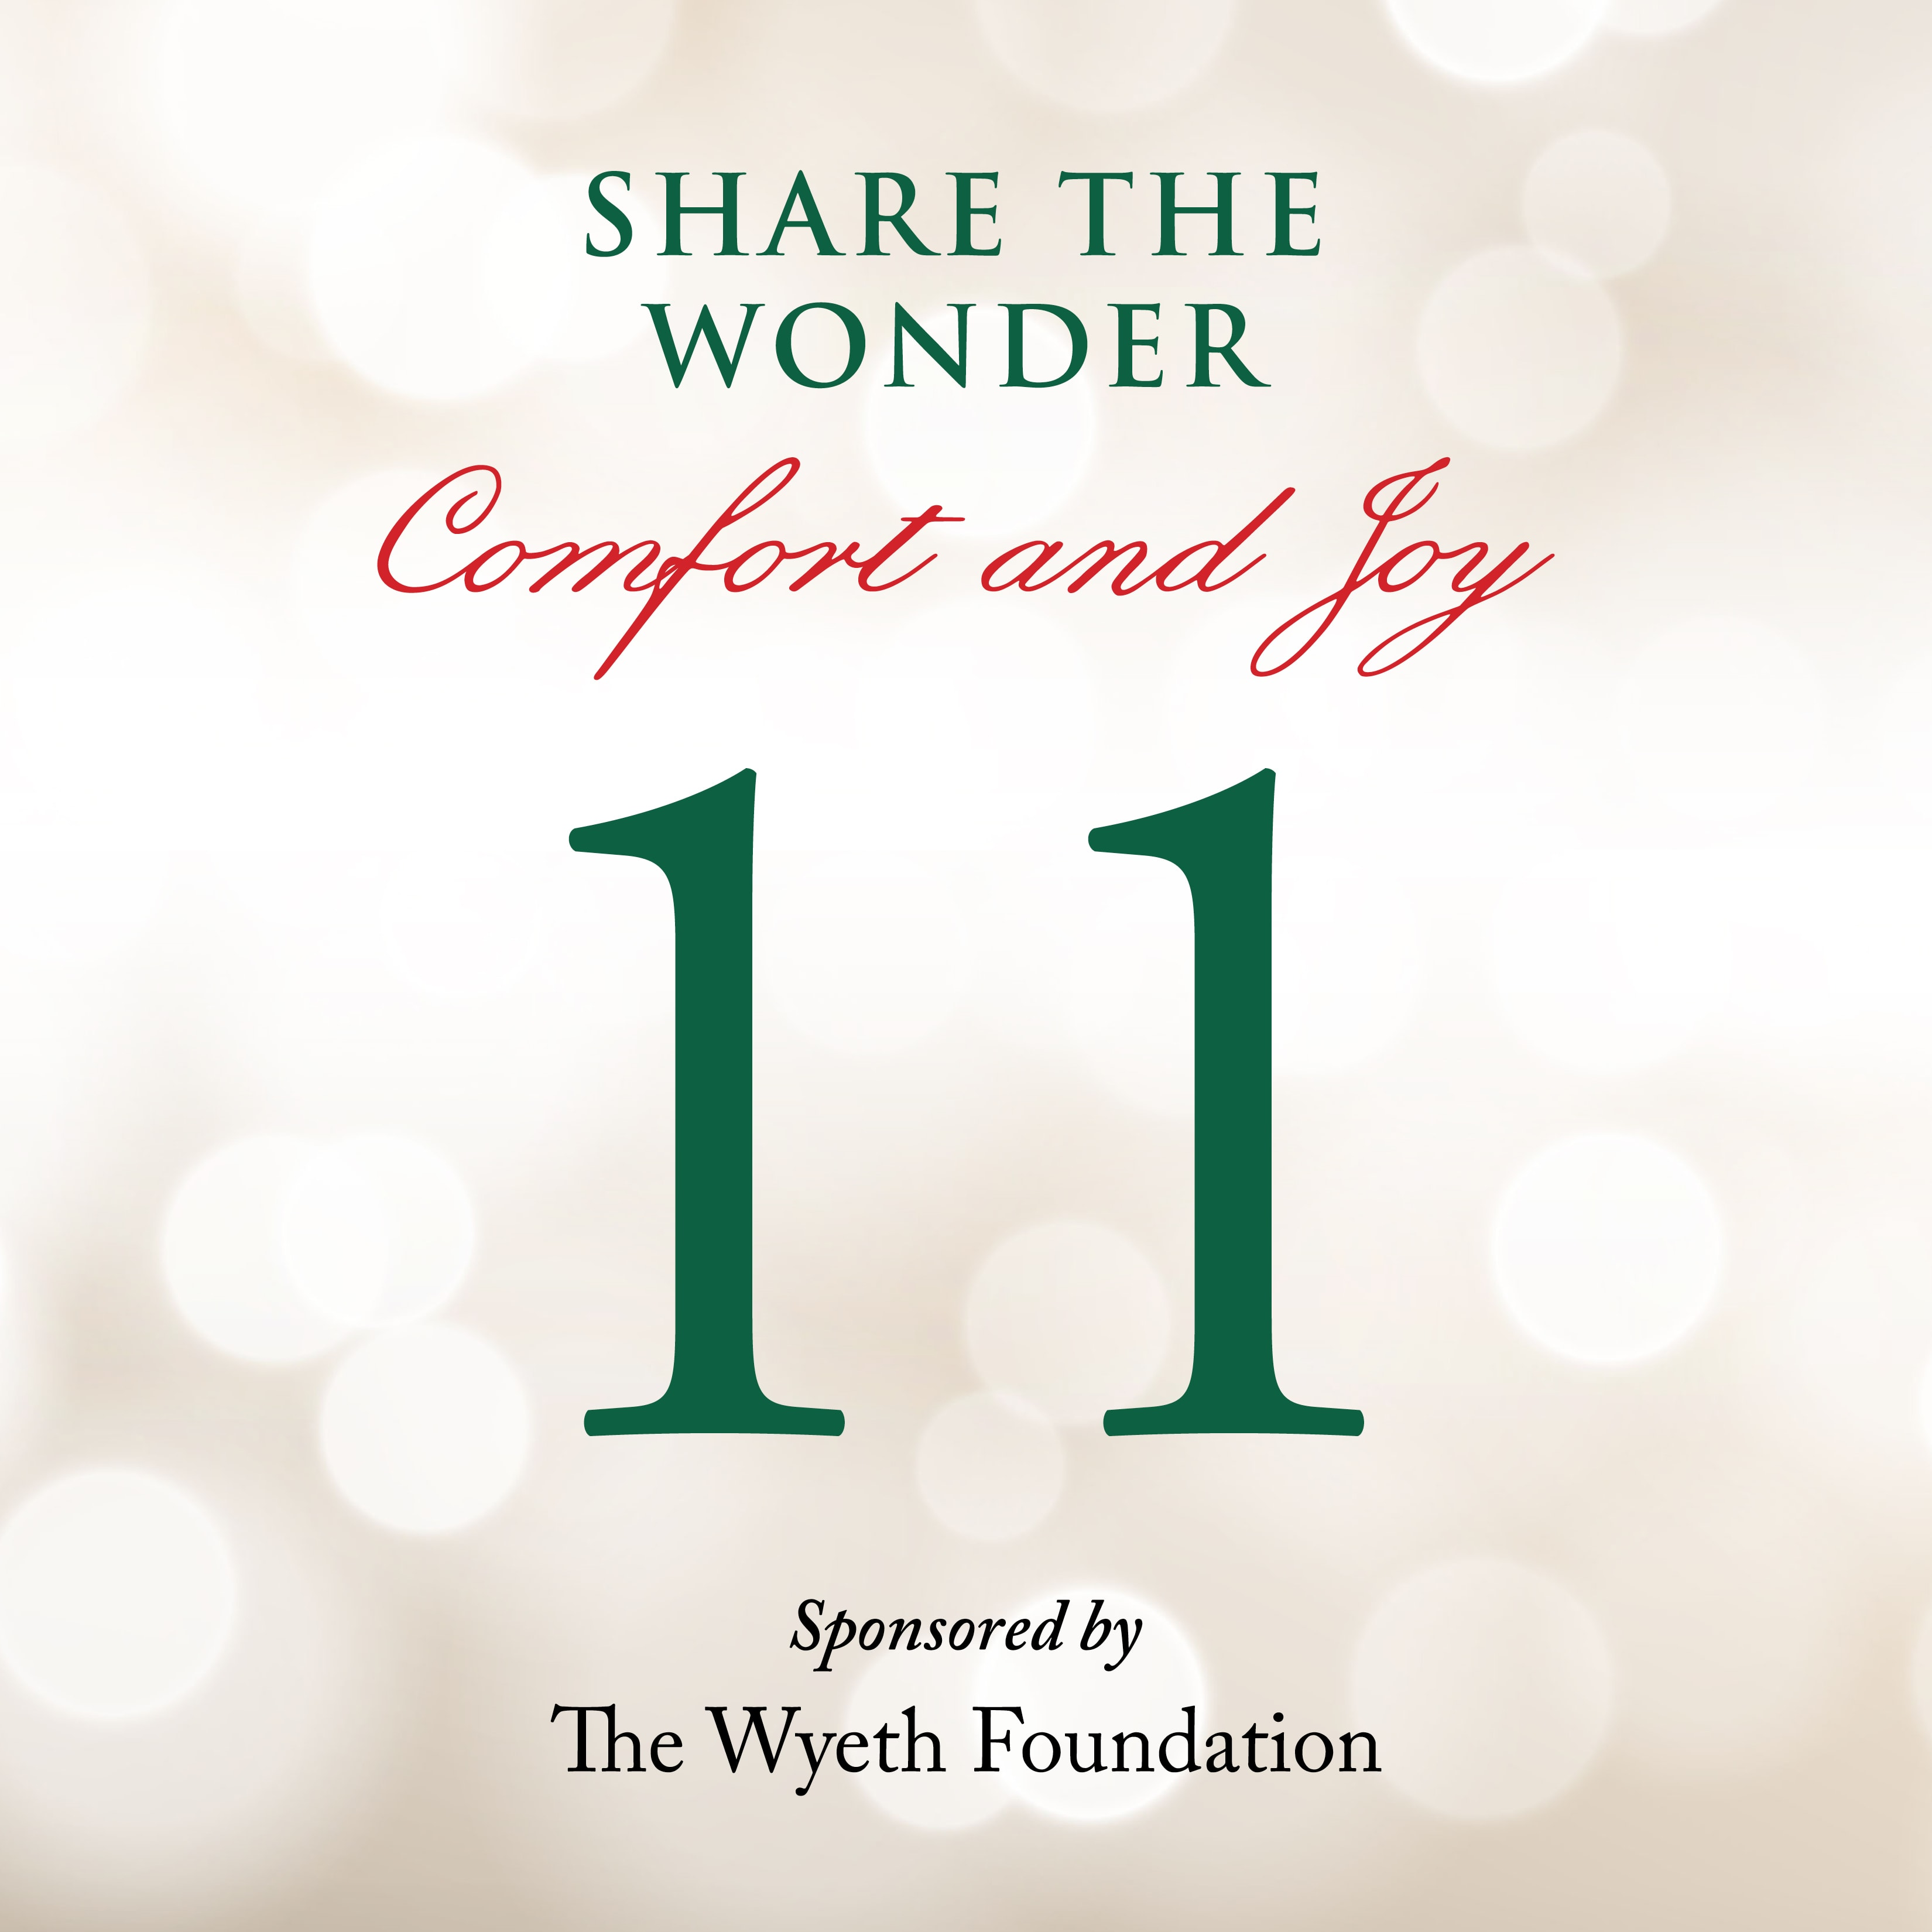 Day 11 of Share the Wonder: December 8